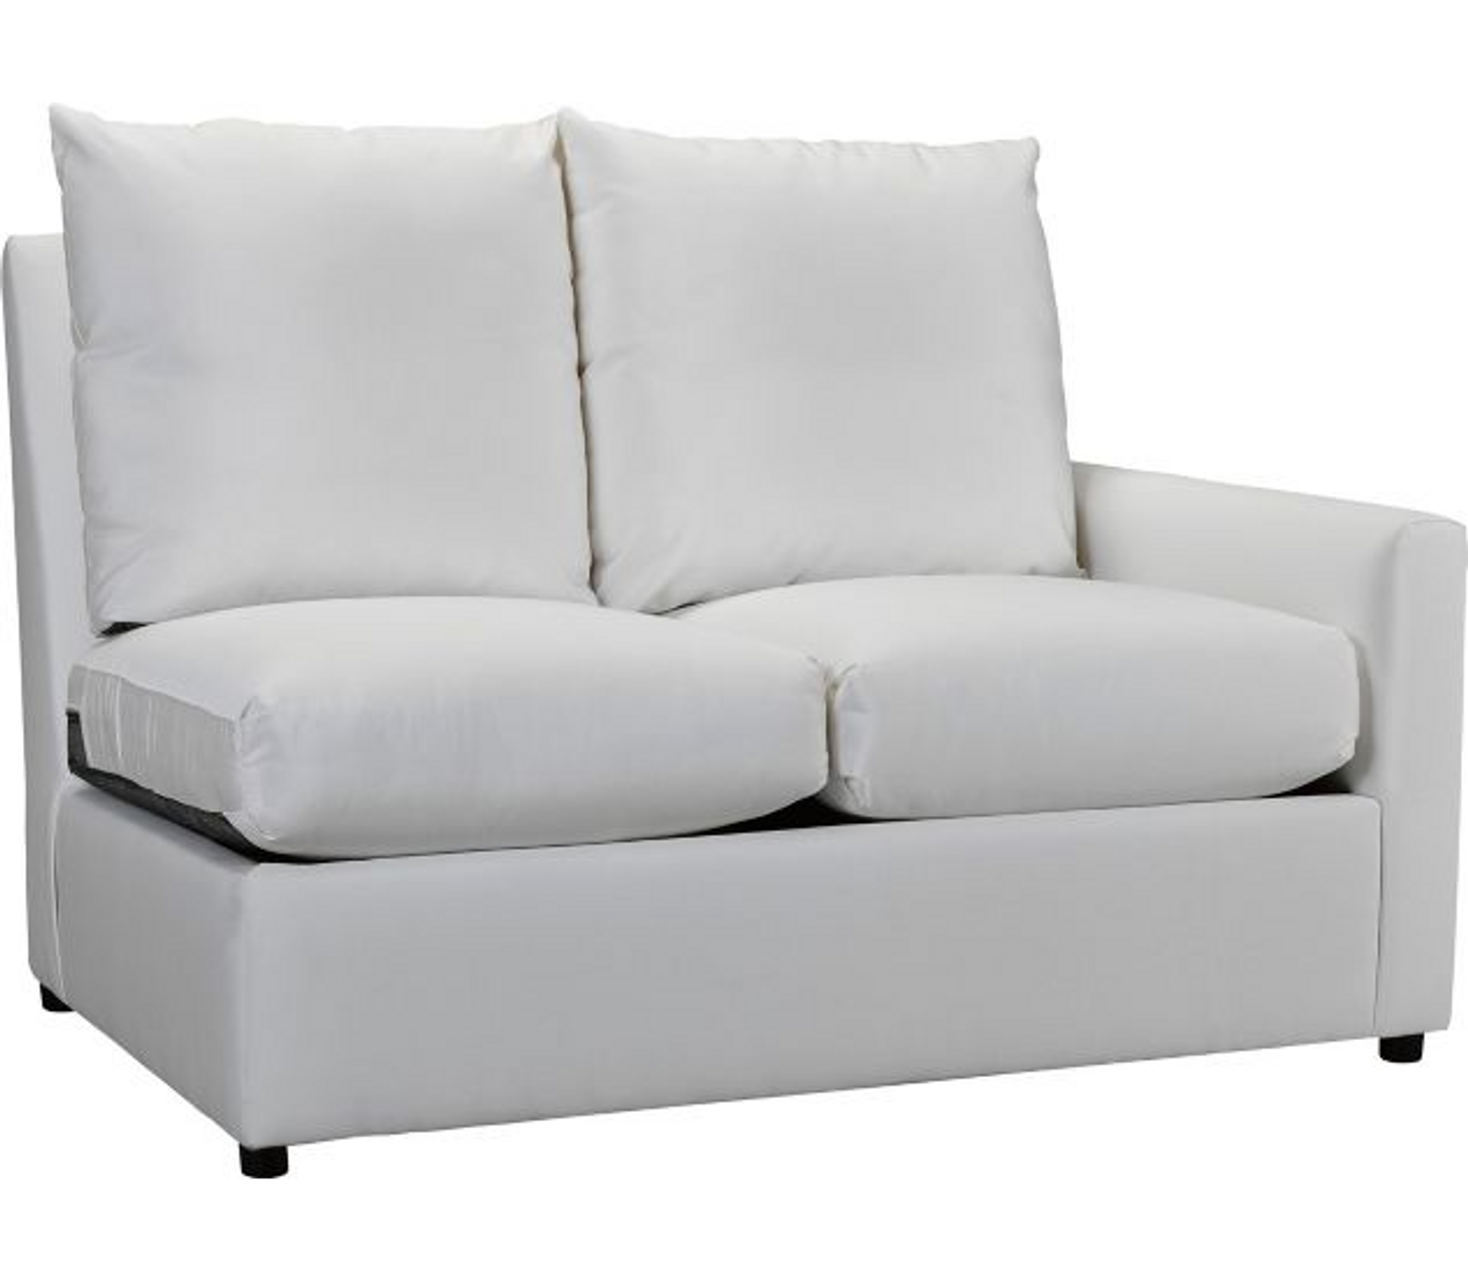 Miraculous Lane Venture Outdoor Upholstery Charlotte Rf One Arm Loveseat Pabps2019 Chair Design Images Pabps2019Com